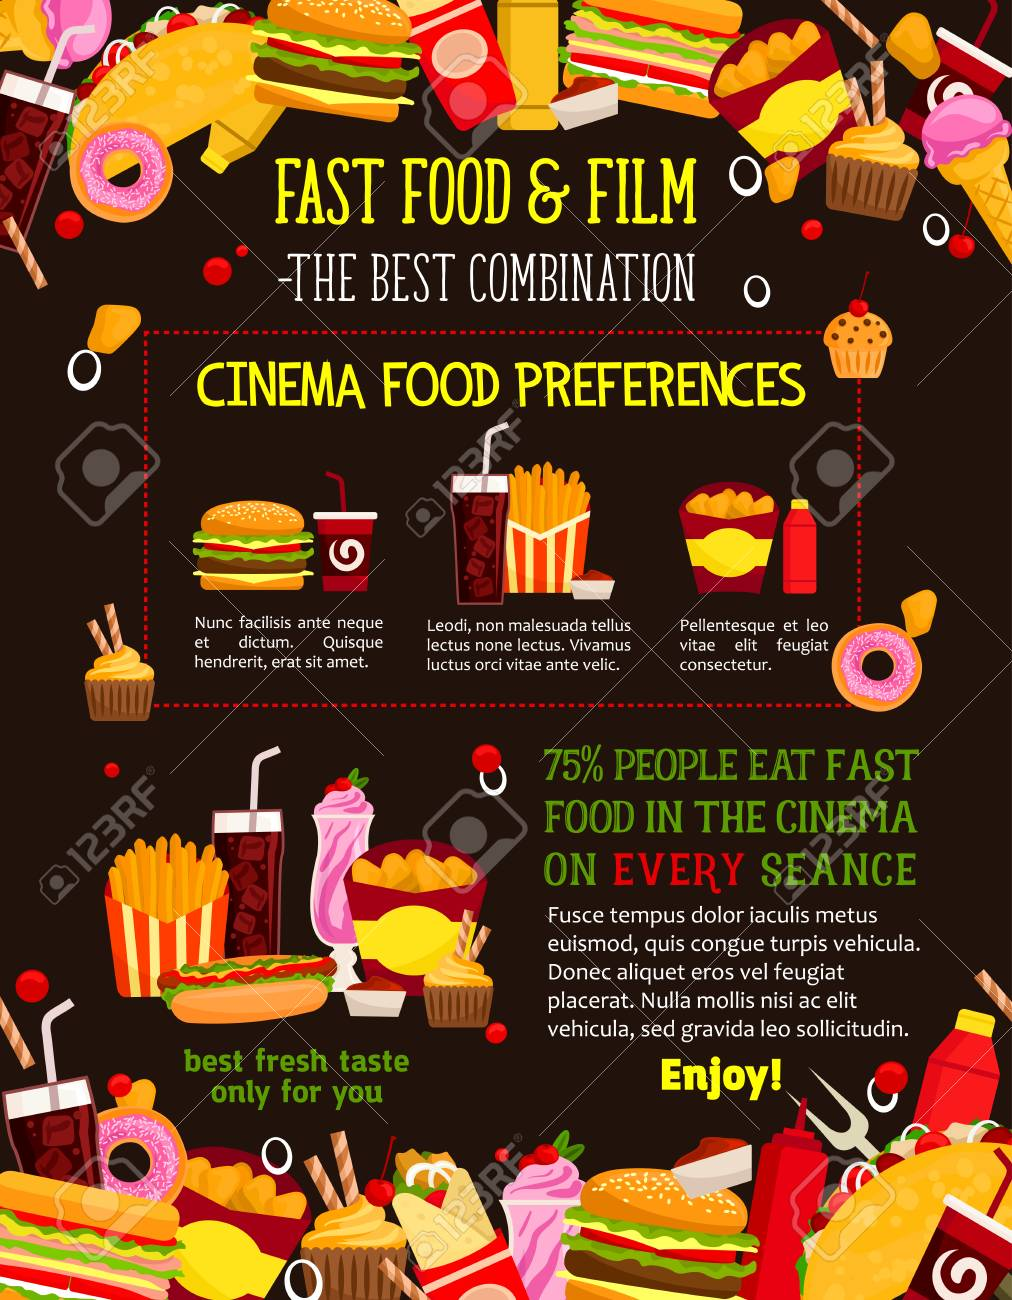 Fast Food Menu Design Template For Cinema Bistro Or Movie Theater Royalty Free Cliparts Vectors And Stock Illustration Image 93369622